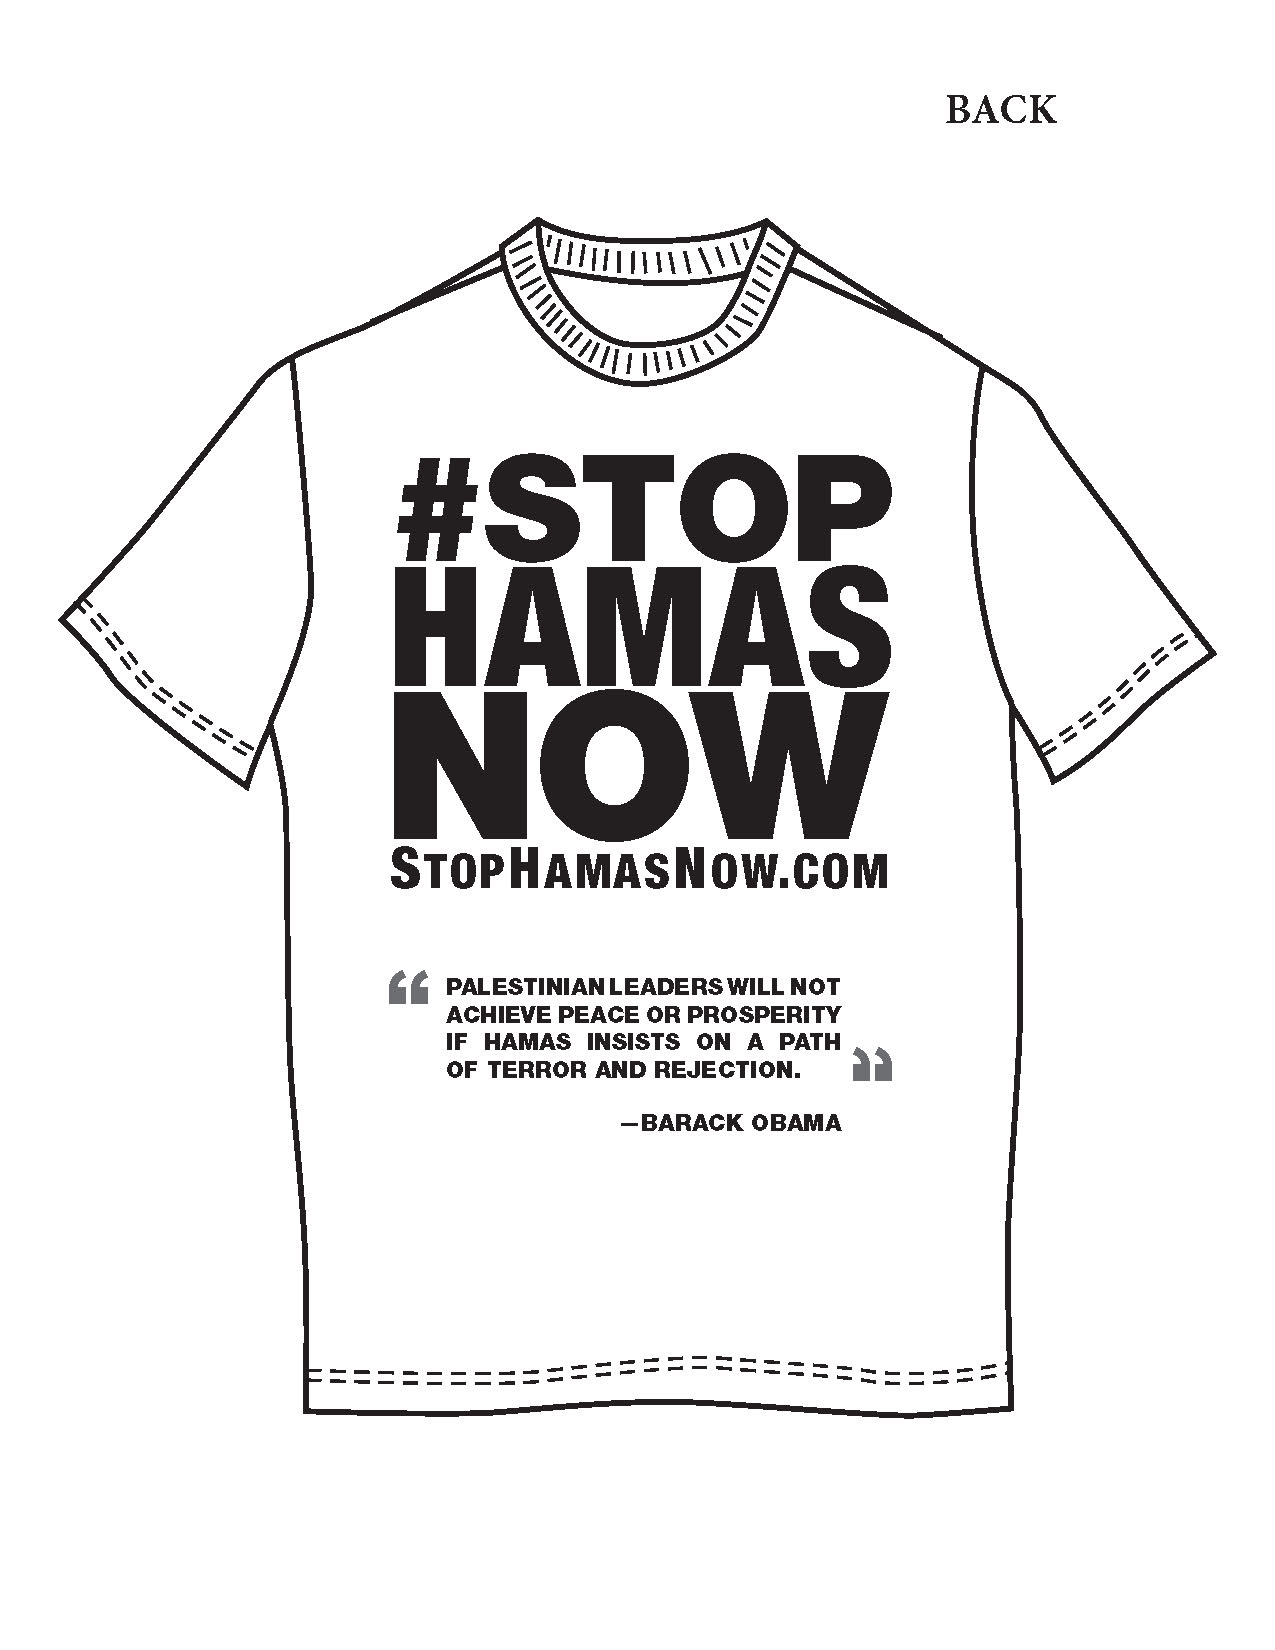 Design your own t shirt lesson plan - Tee Shirt For Campus Stophamasnow Available Soon